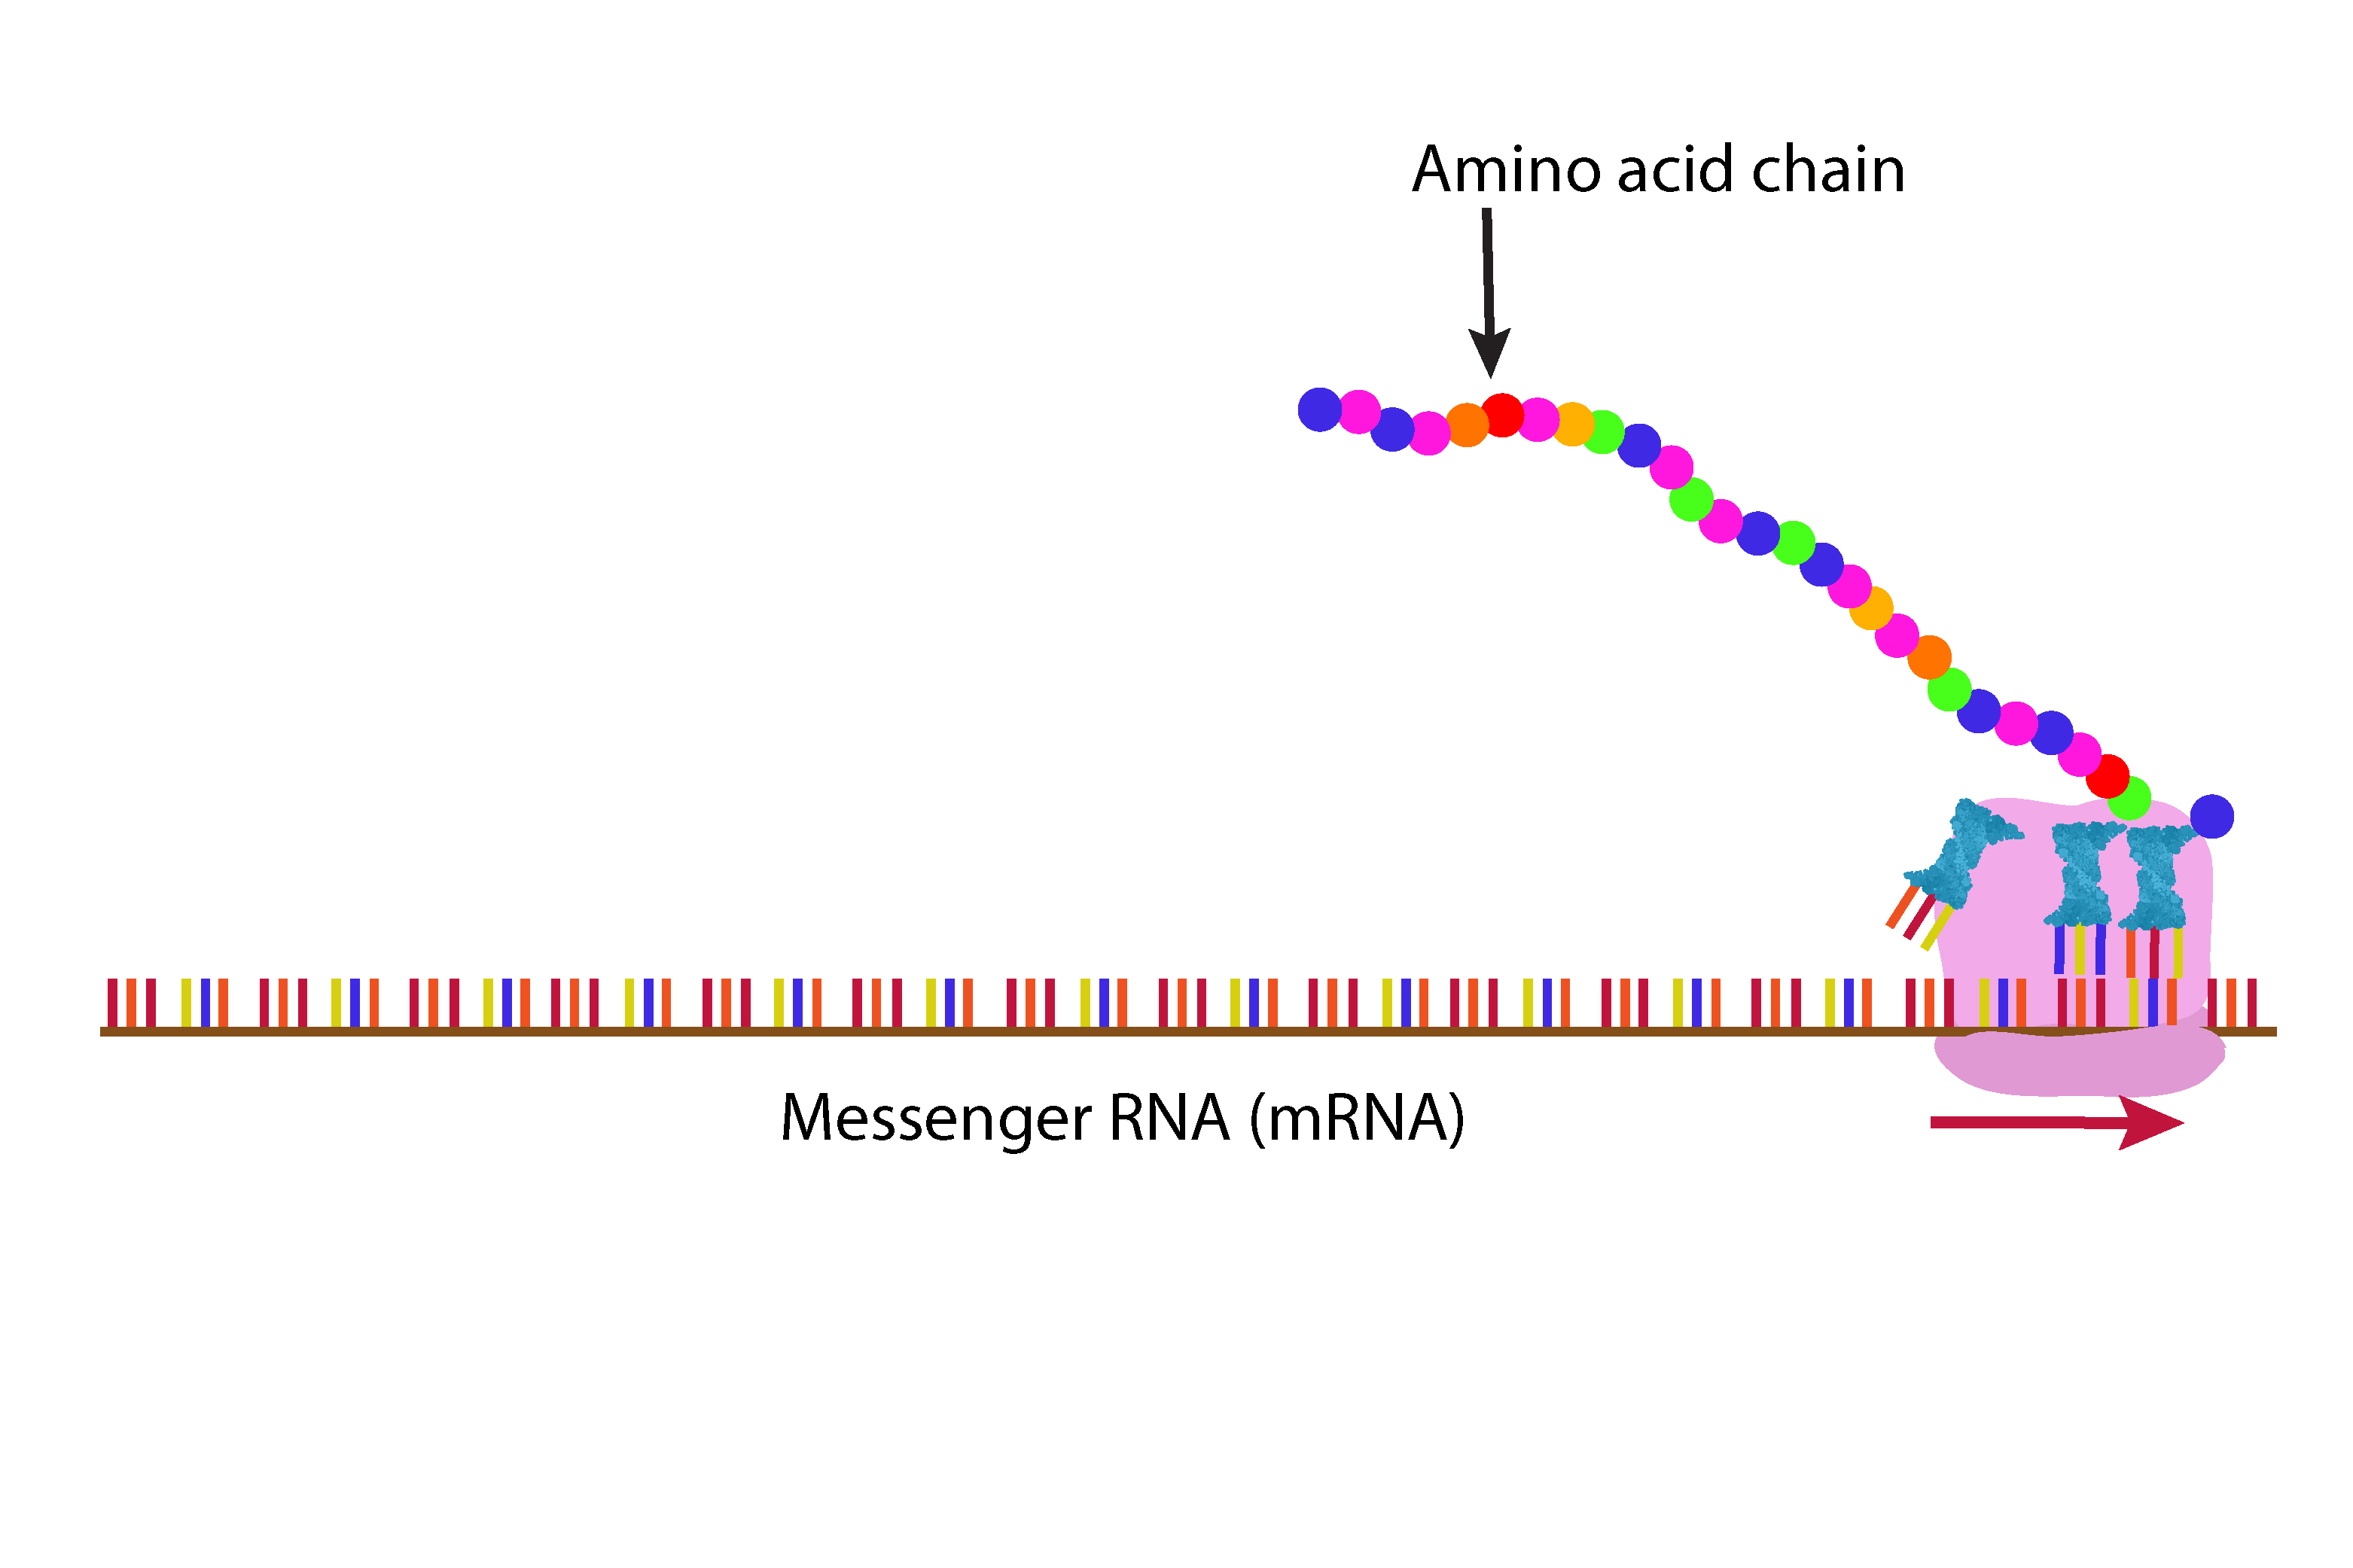 As the ribosome nears the end of the mRNA it has made a long chain of protein in this case haemoglobin